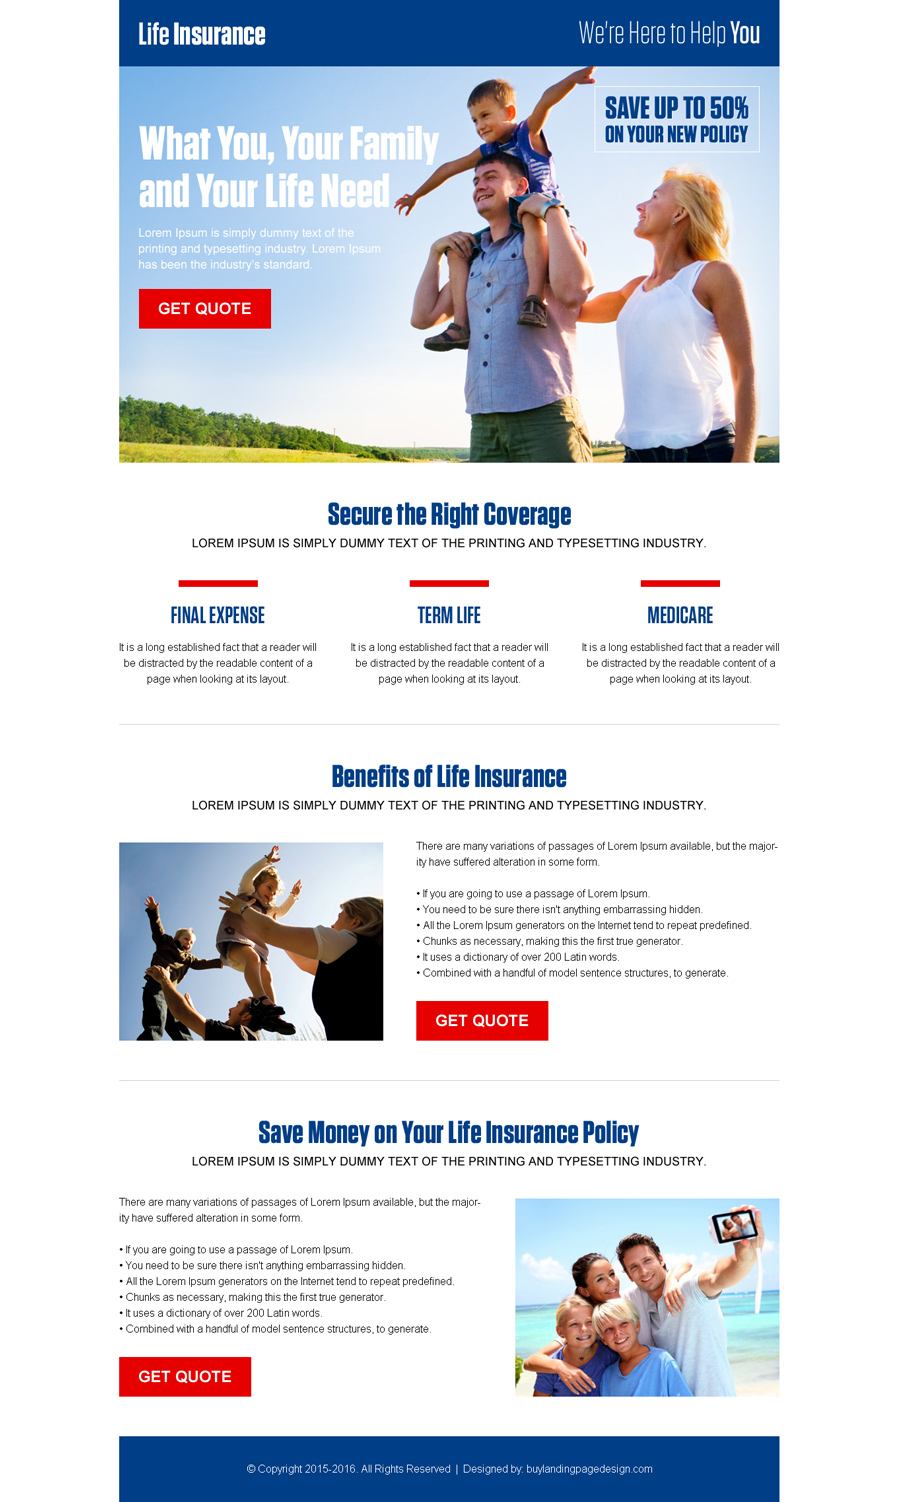 converting-life-insurance-free-quote-service-landing-page-design-template-005